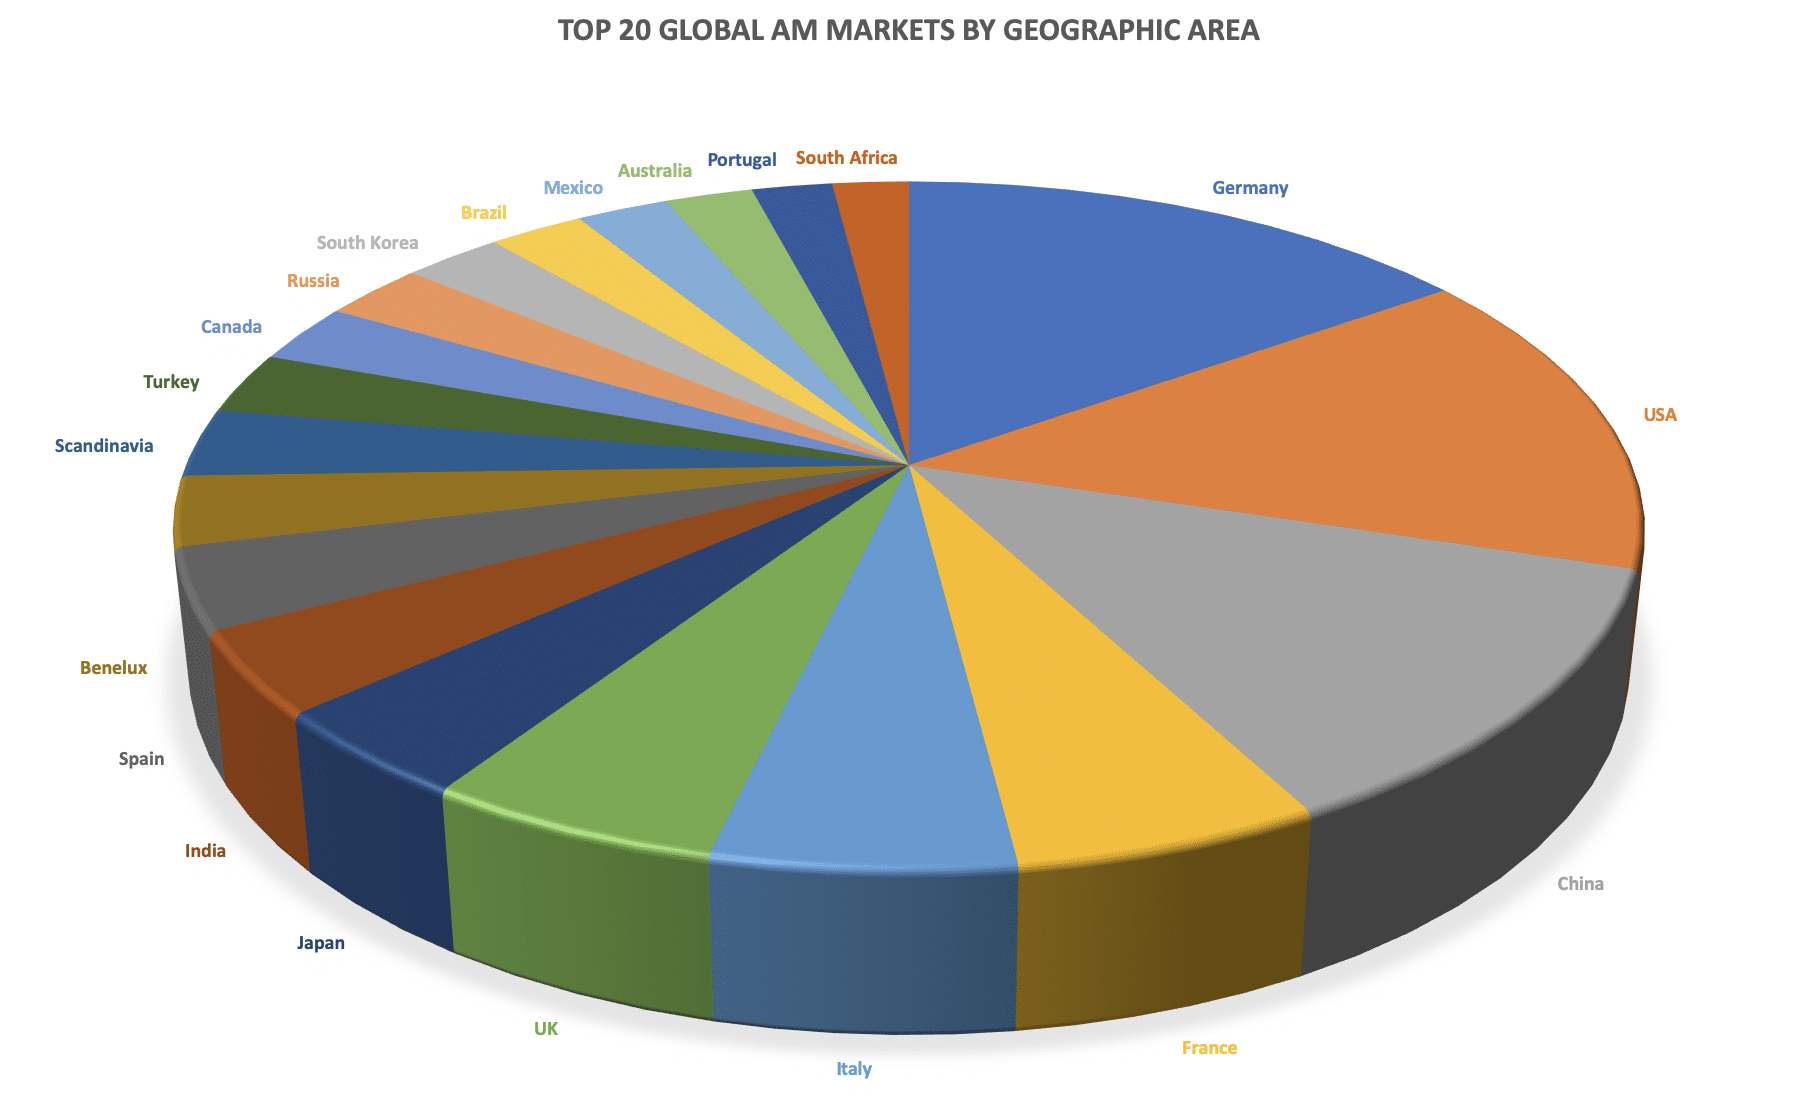 The top 20 global AM markets